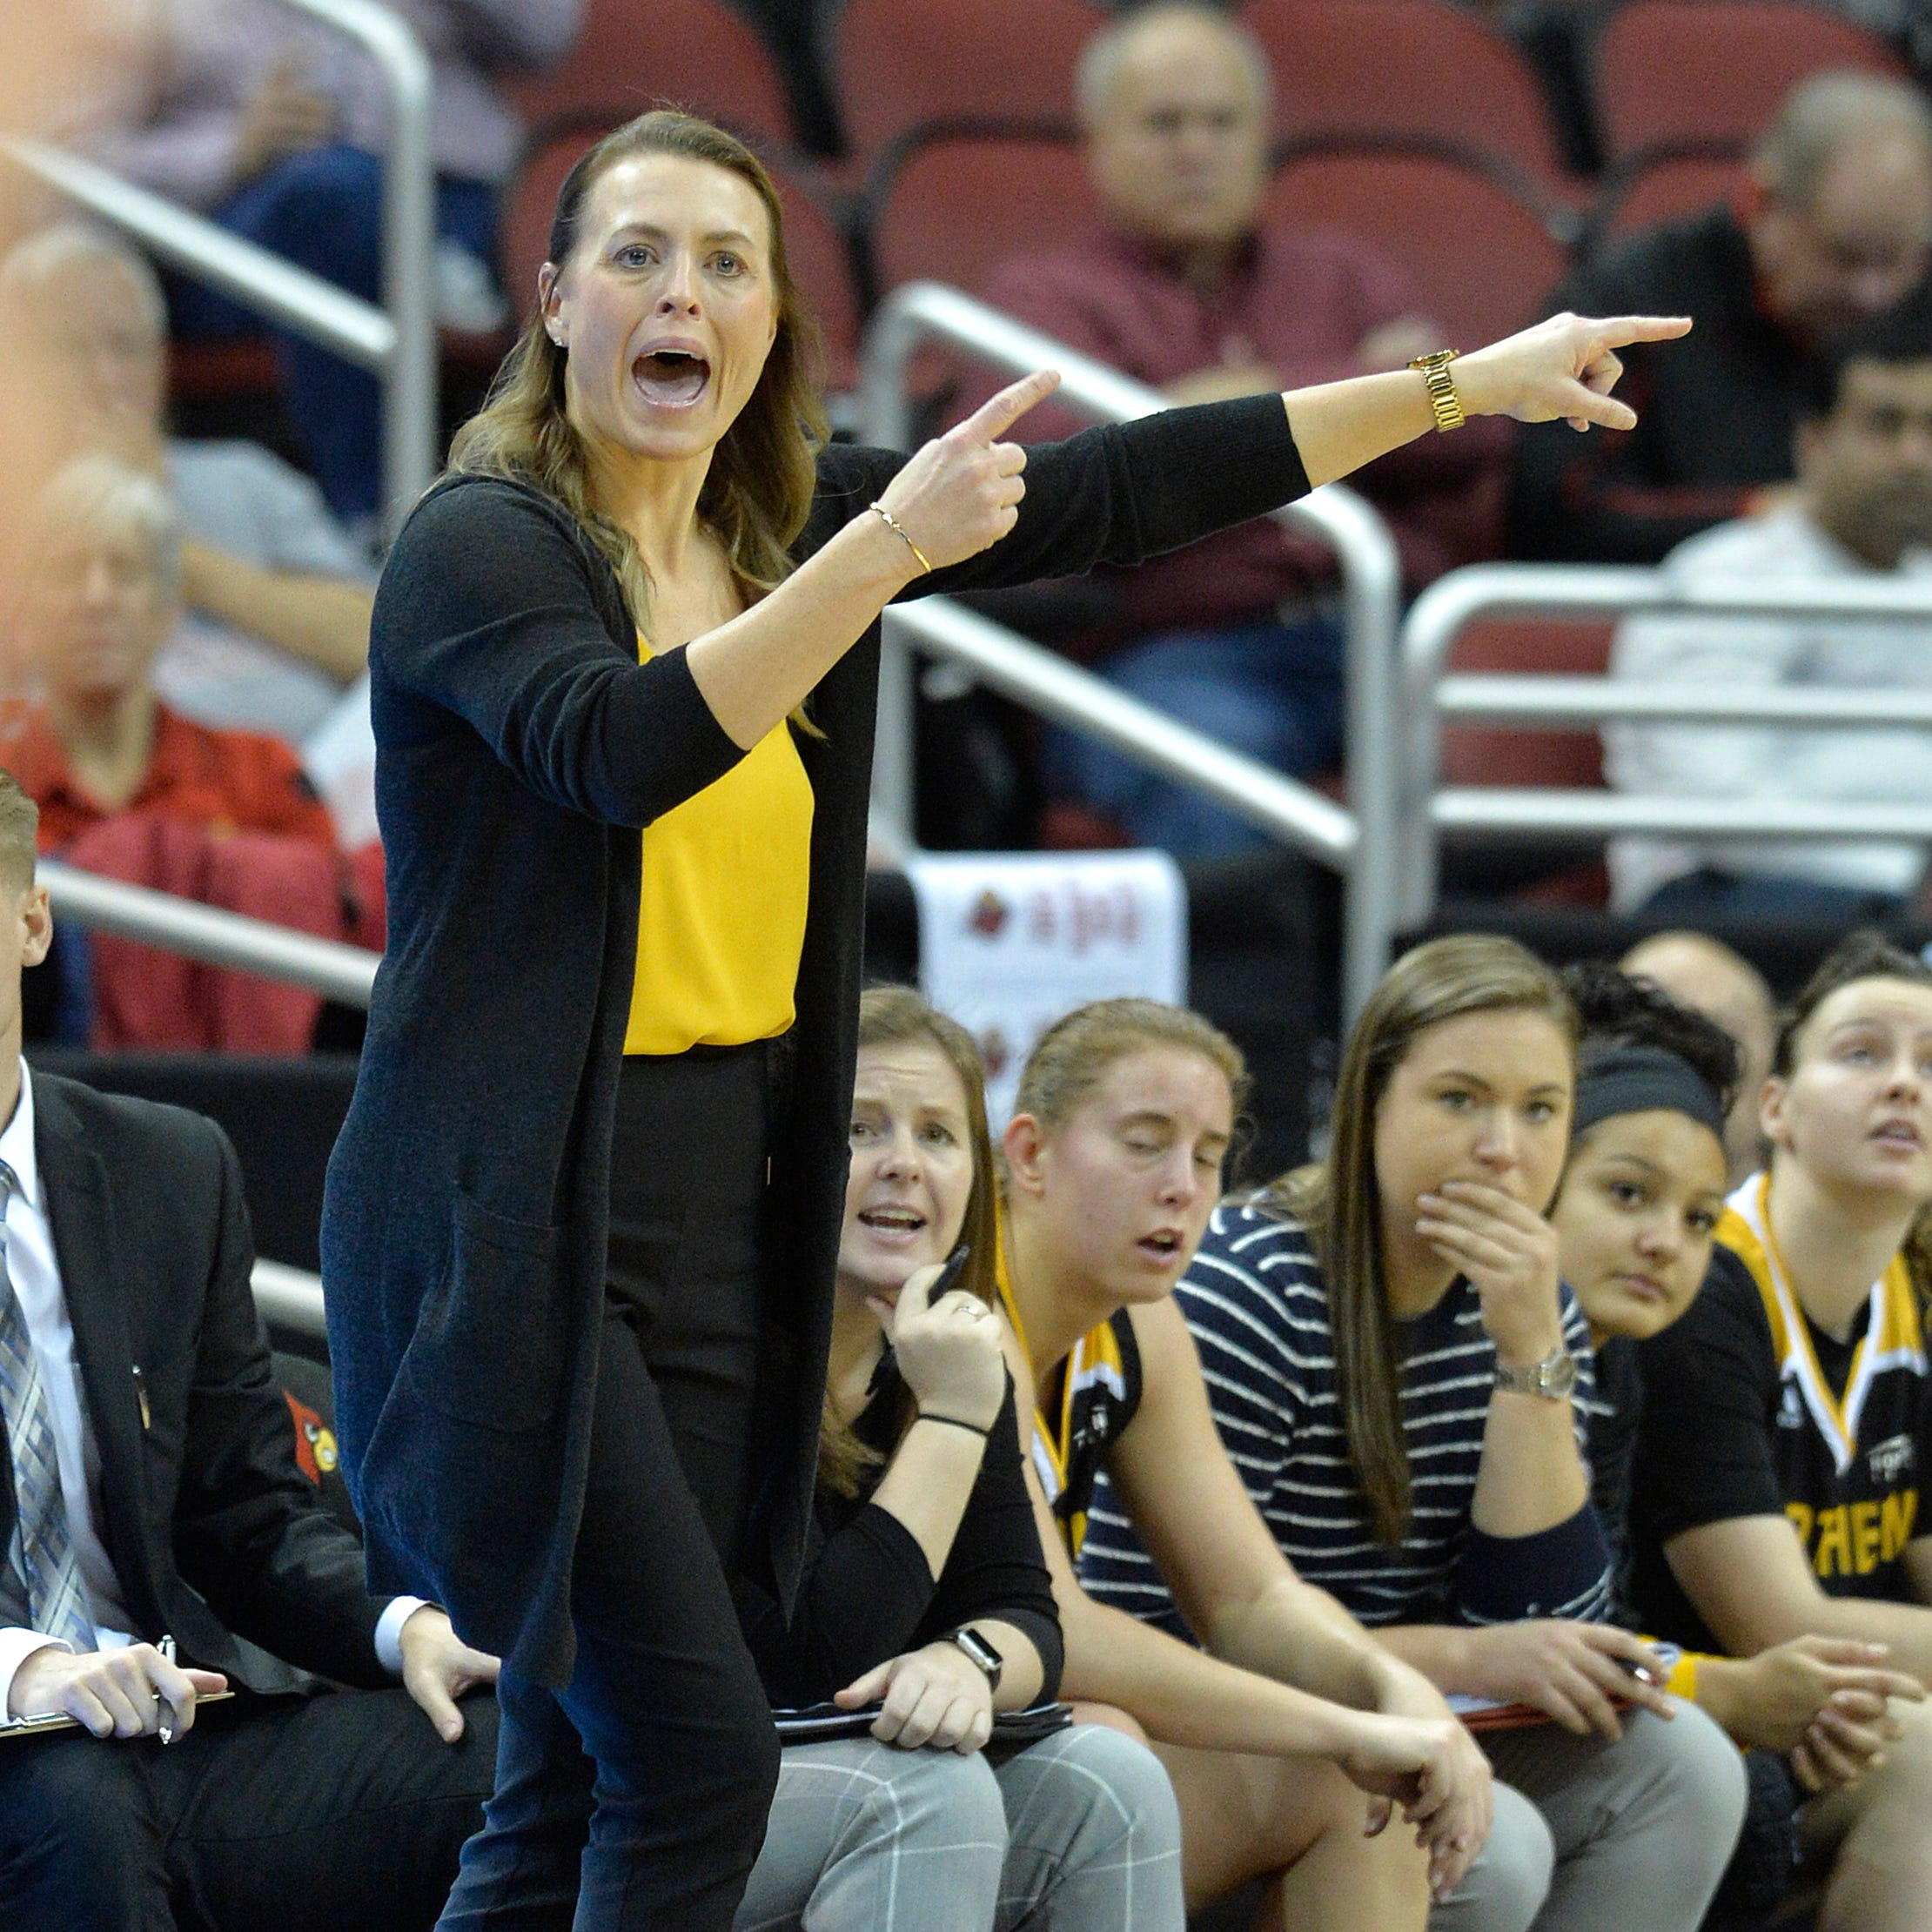 Is NKU women's basketball coach abusive or fun? Ex-players divided on Camryn Whitaker